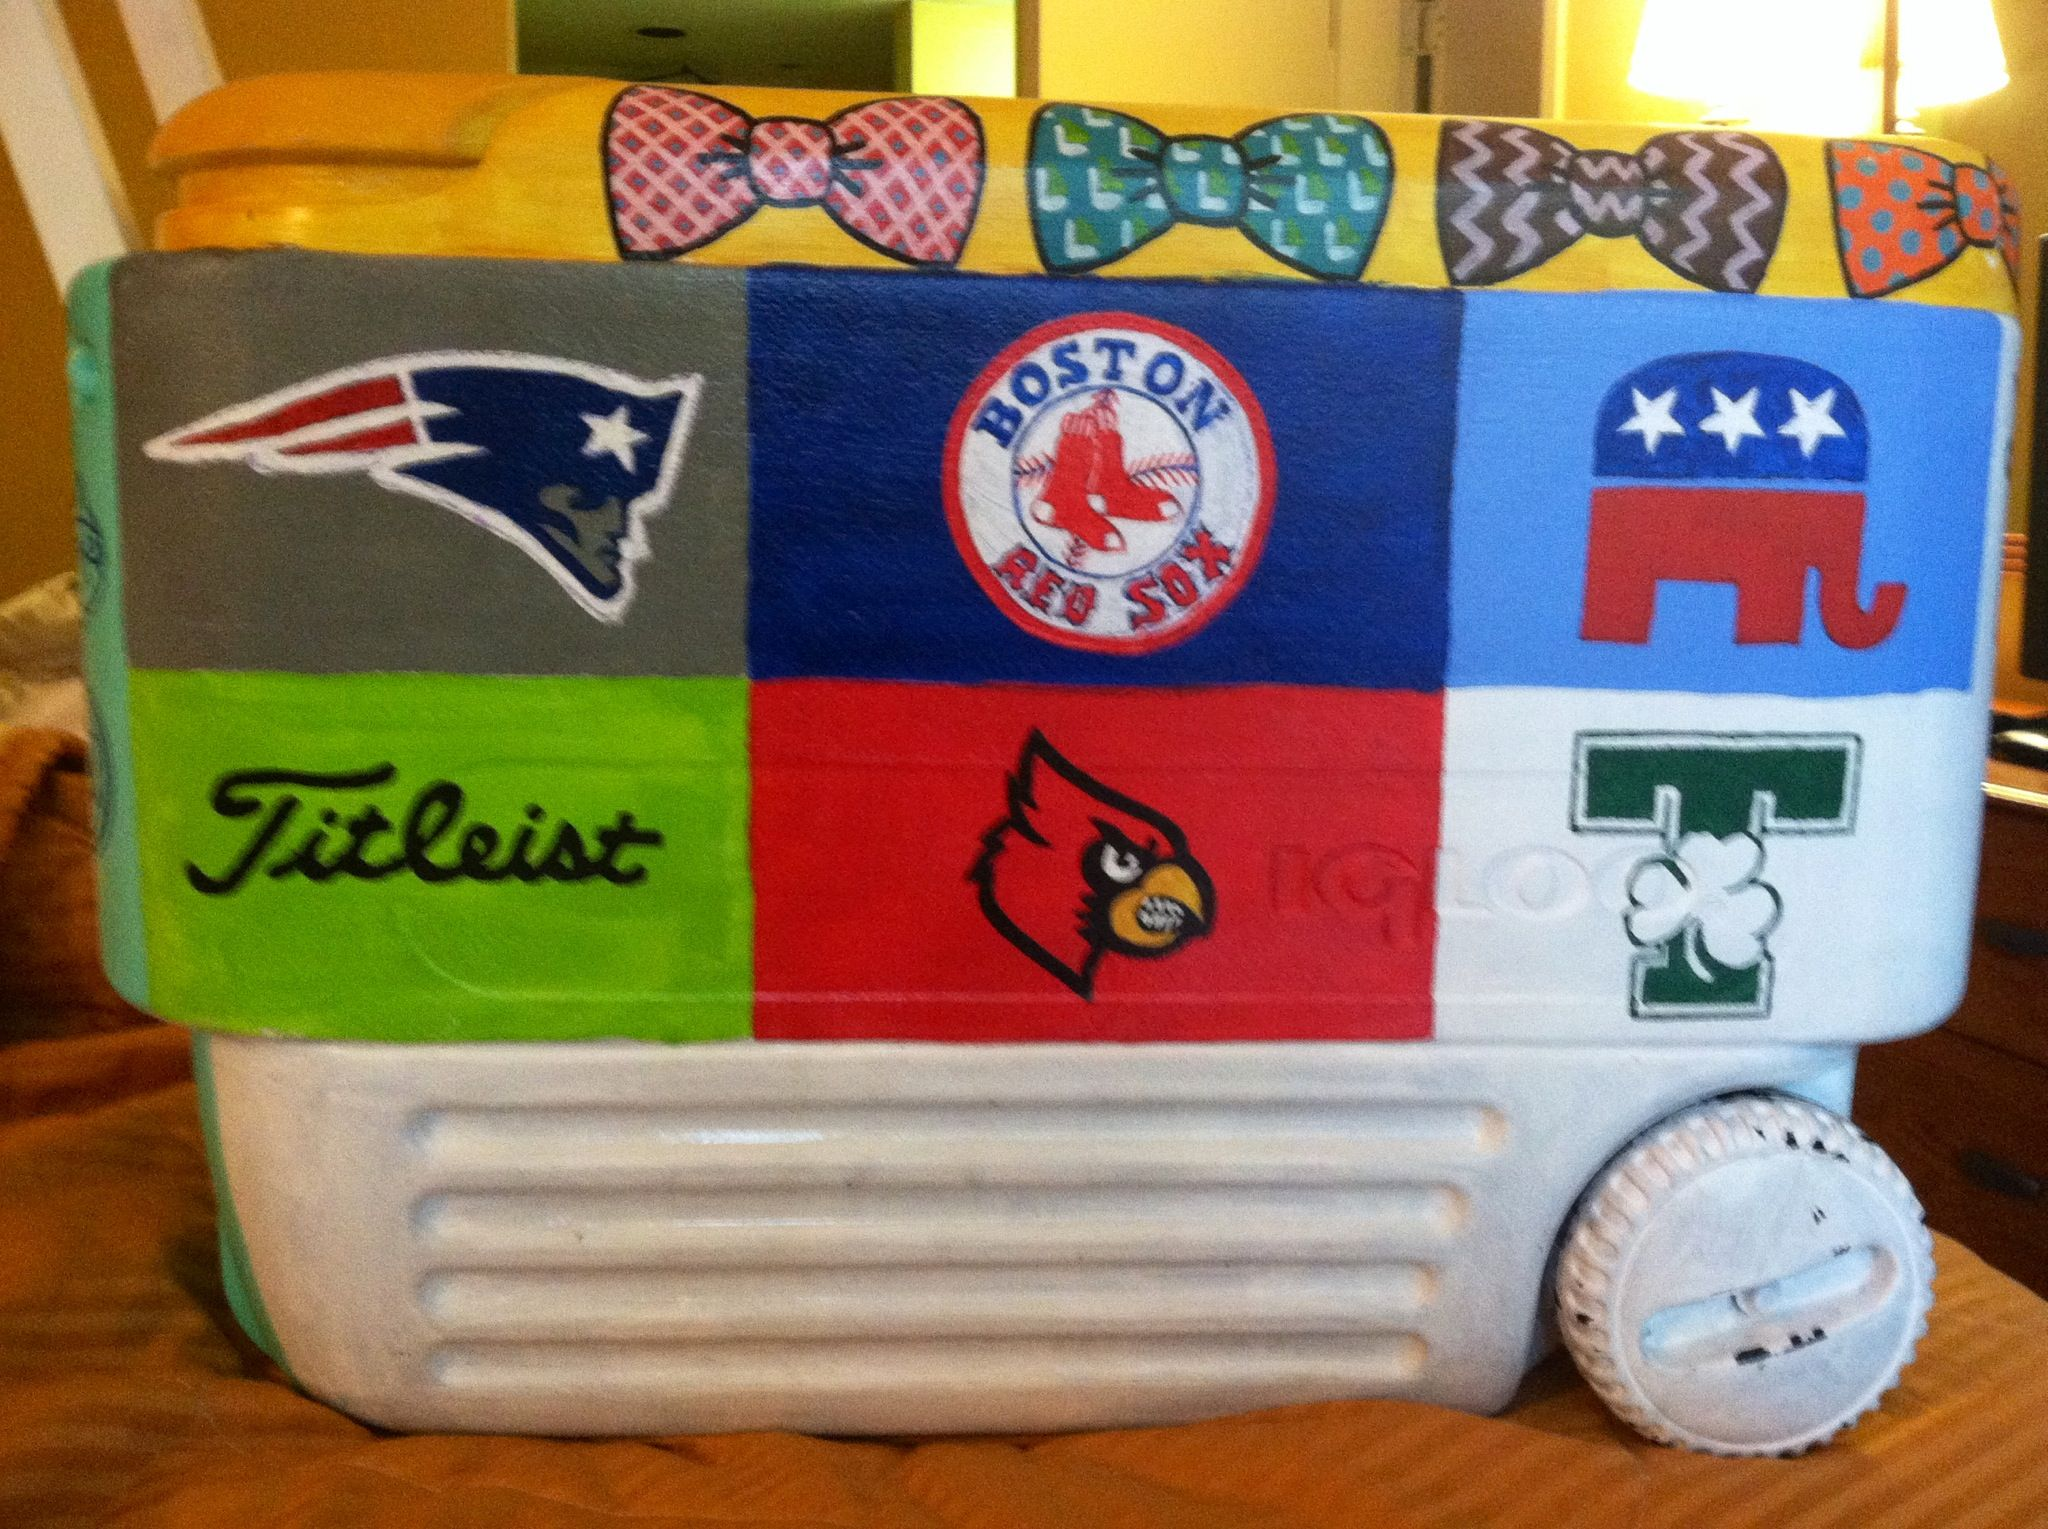 All of his favorite things: patriots, Red Sox, titleist, republican, UofL, Trinity #FRAT #SAEformal #cooler